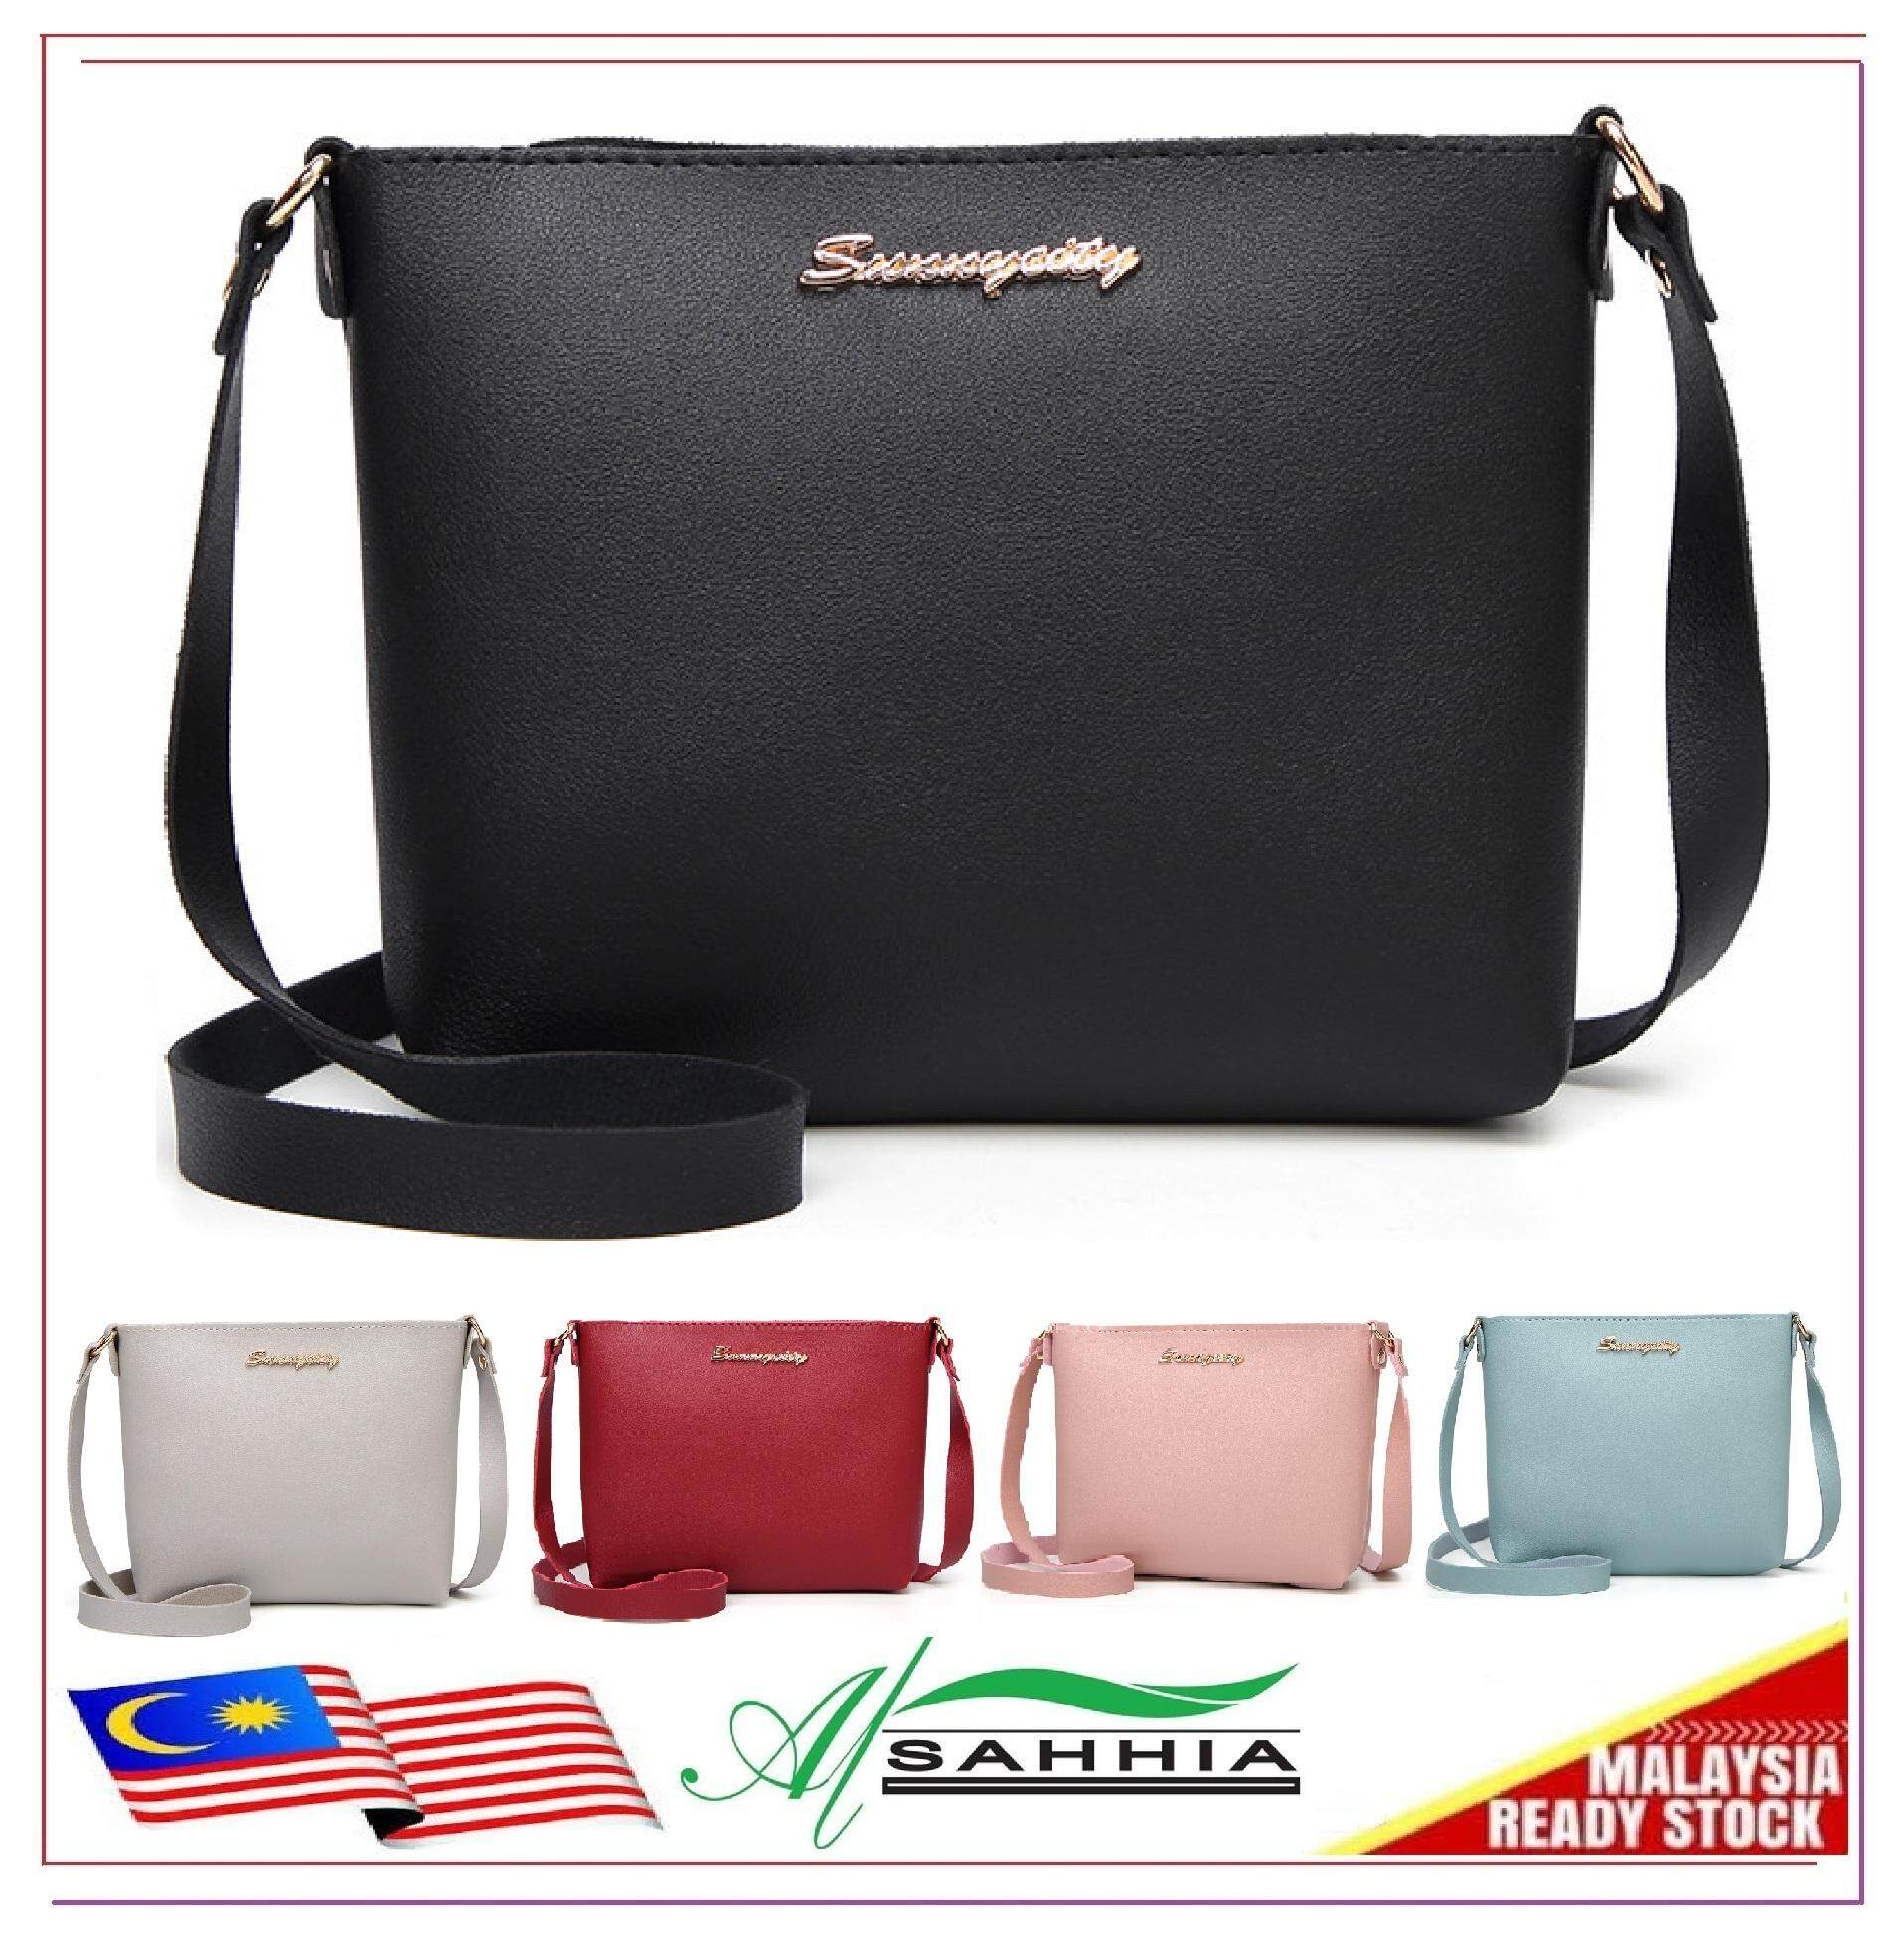 ac03a8f2dc Women Bags - Buy Women Bags at Best Price in Malaysia